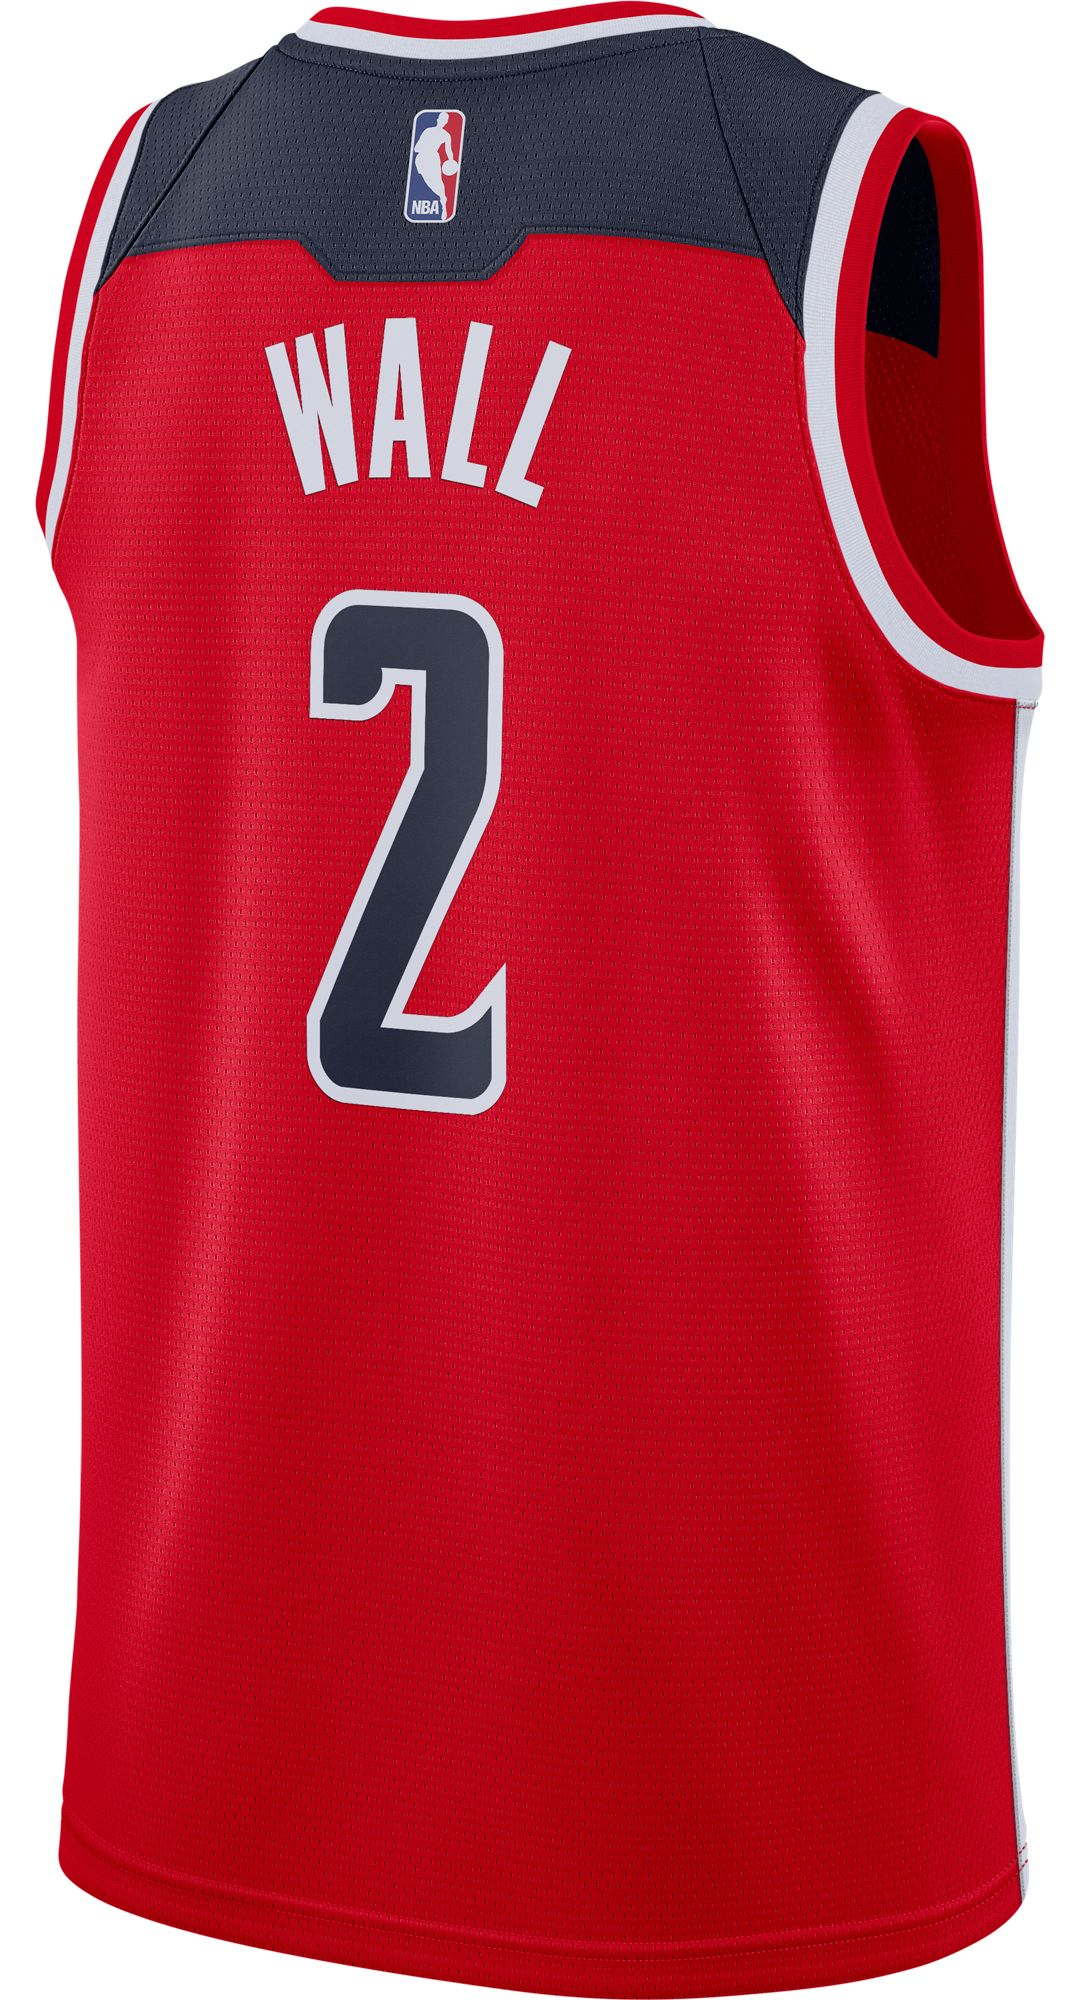 info for 9a3c0 1556a Nike Men's Washington Wizards John Wall #2 Red Dri-FIT Swingman Jersey